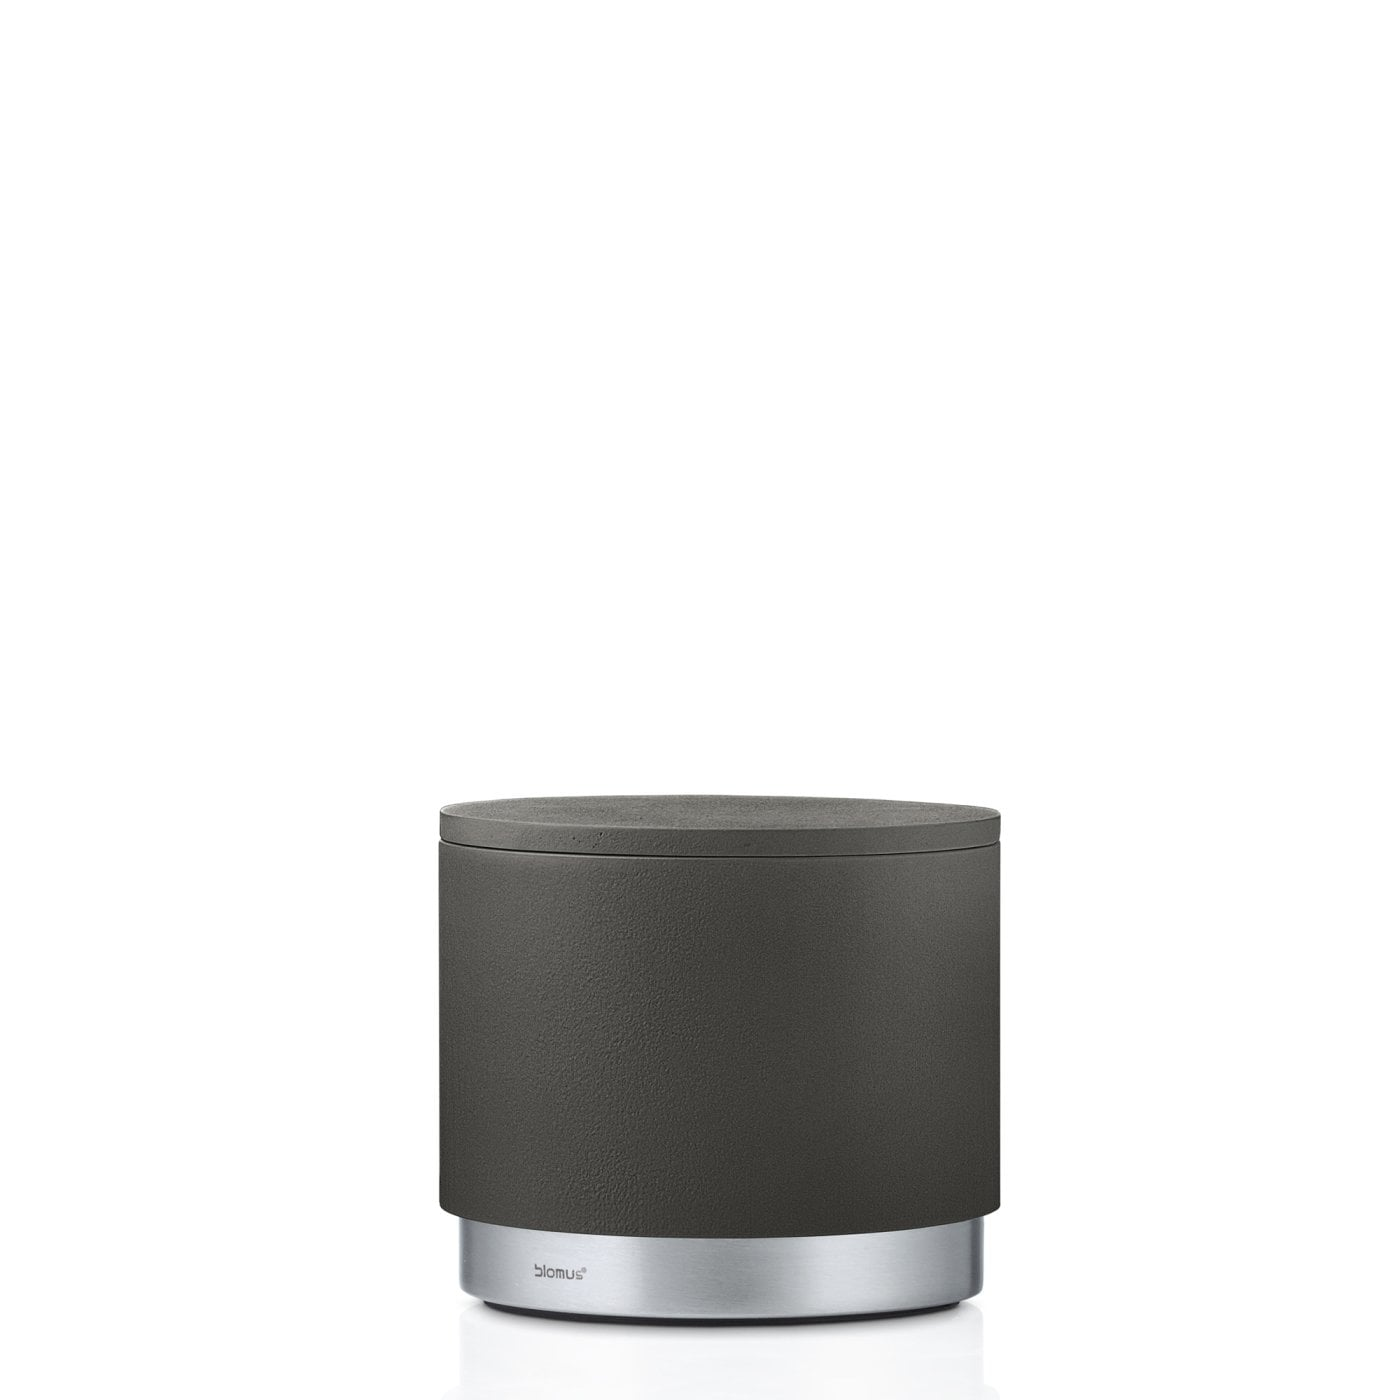 ARA SOAP STORAGE CANISTER BOX - Anthracite / Black